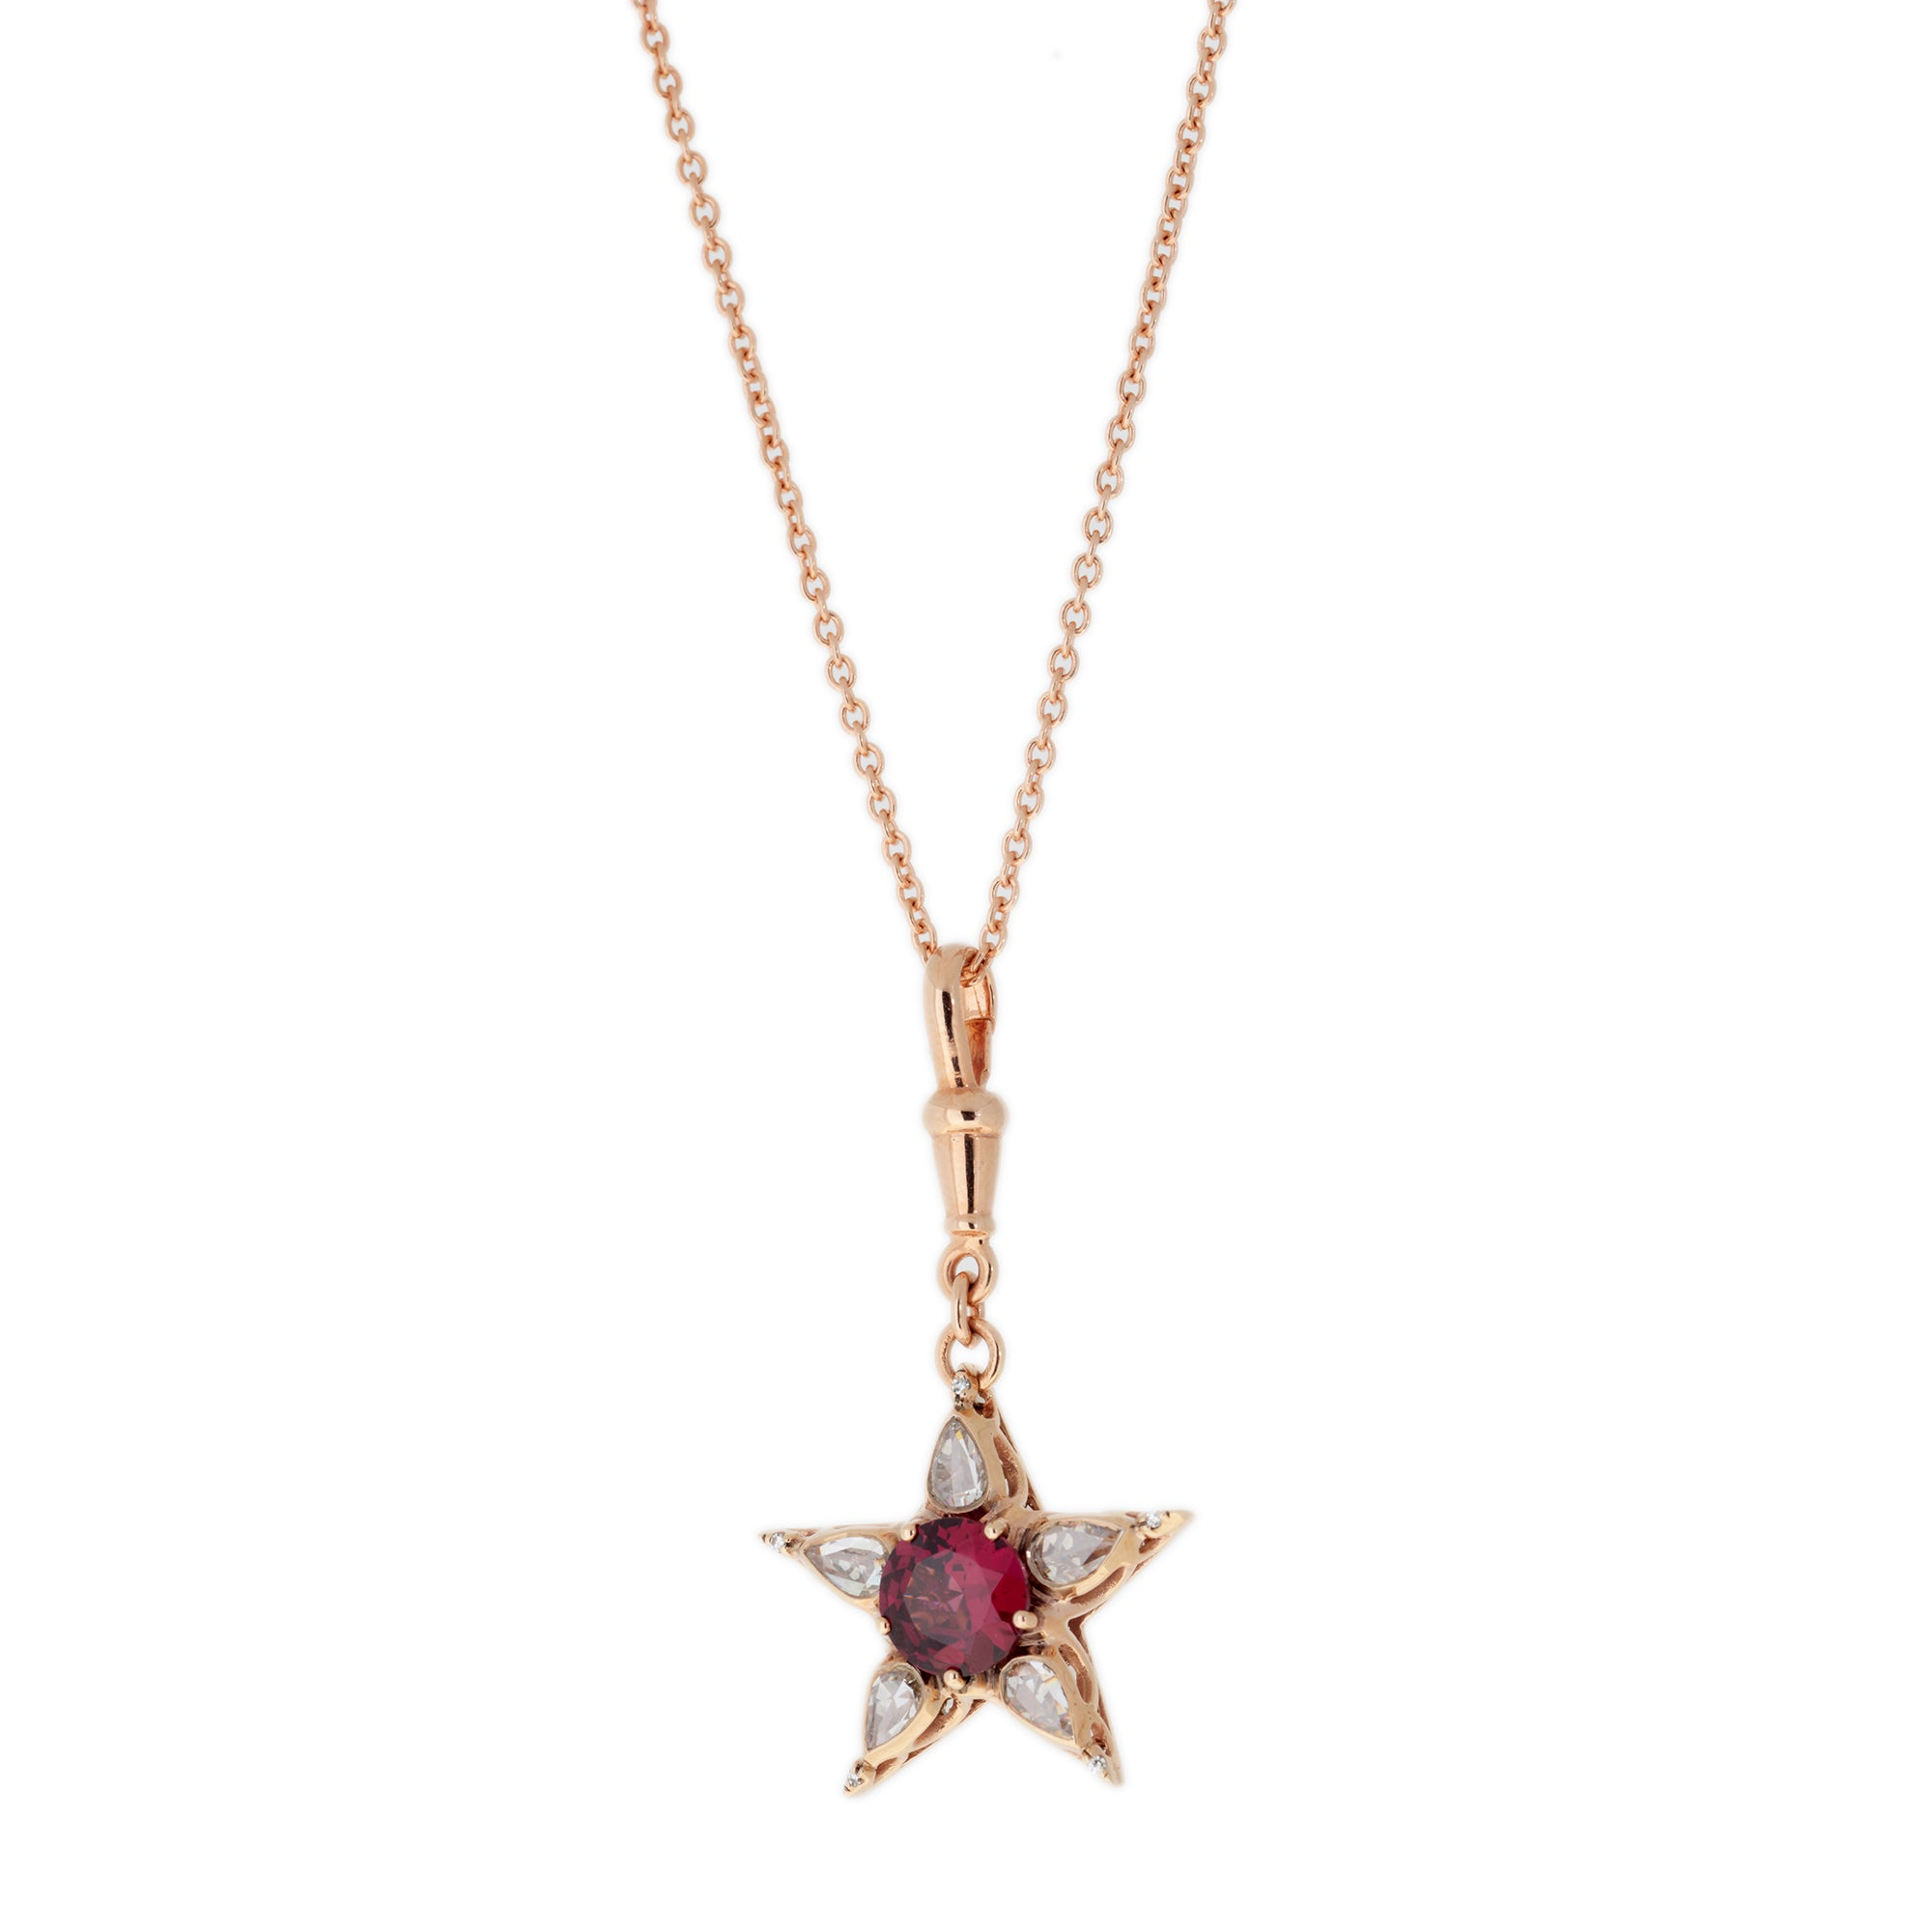 Rhodolite & Diamond Istanbul Necklace - Selim Mouzannar - Necklace | Broken English Jewelry